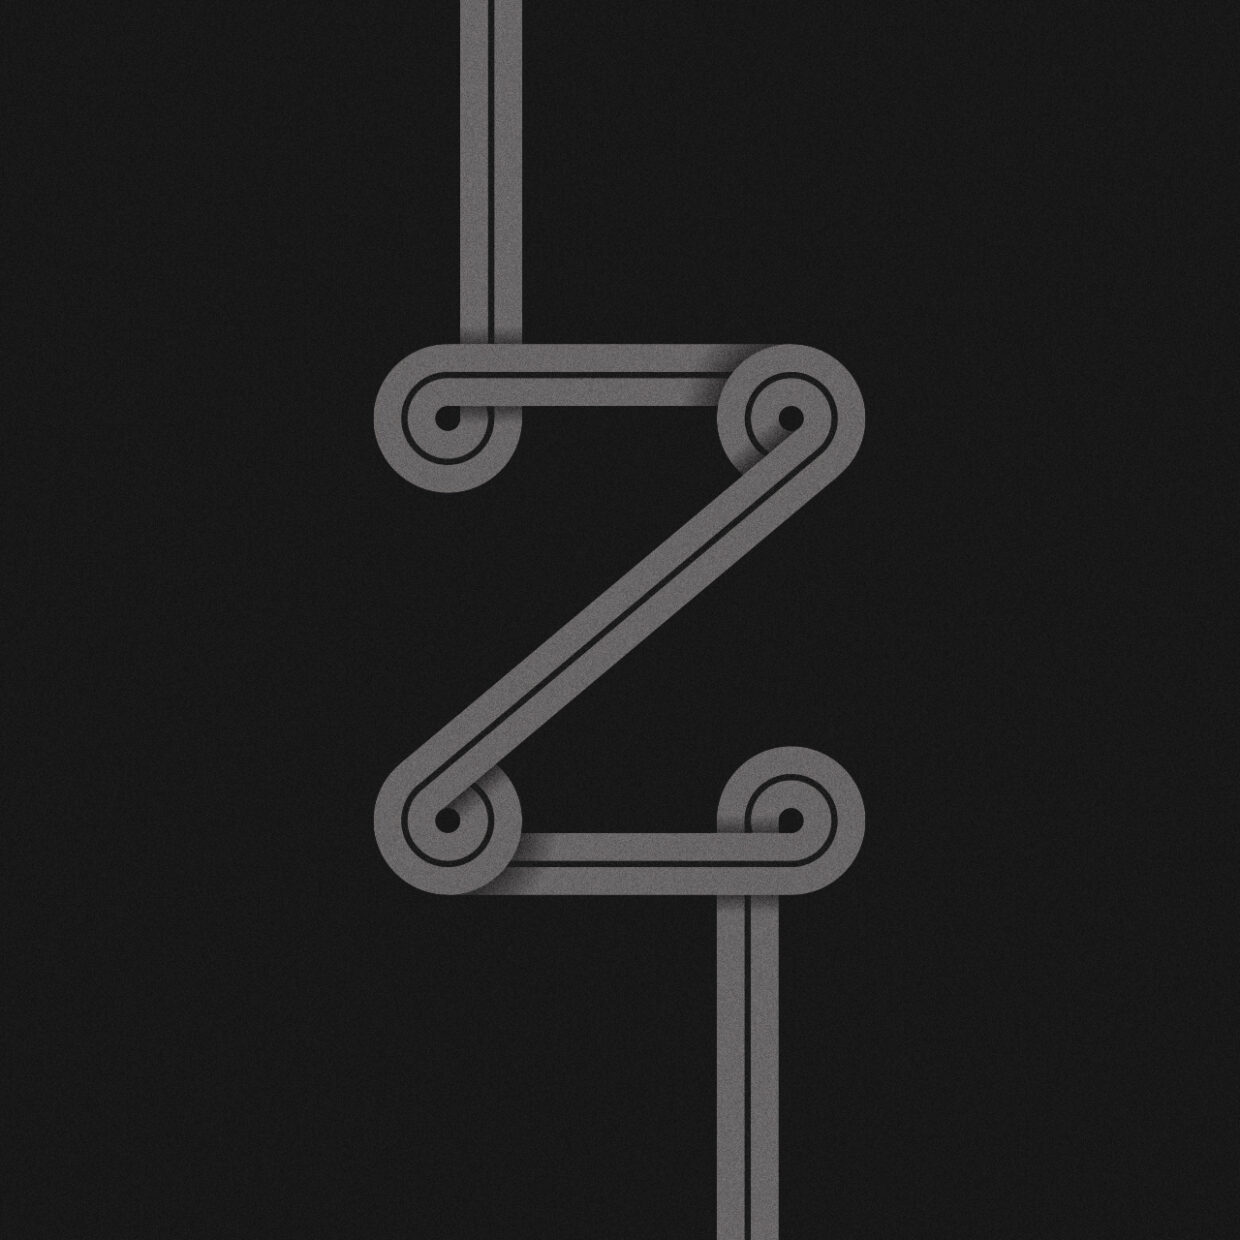 Illustration of an abstract Z letter